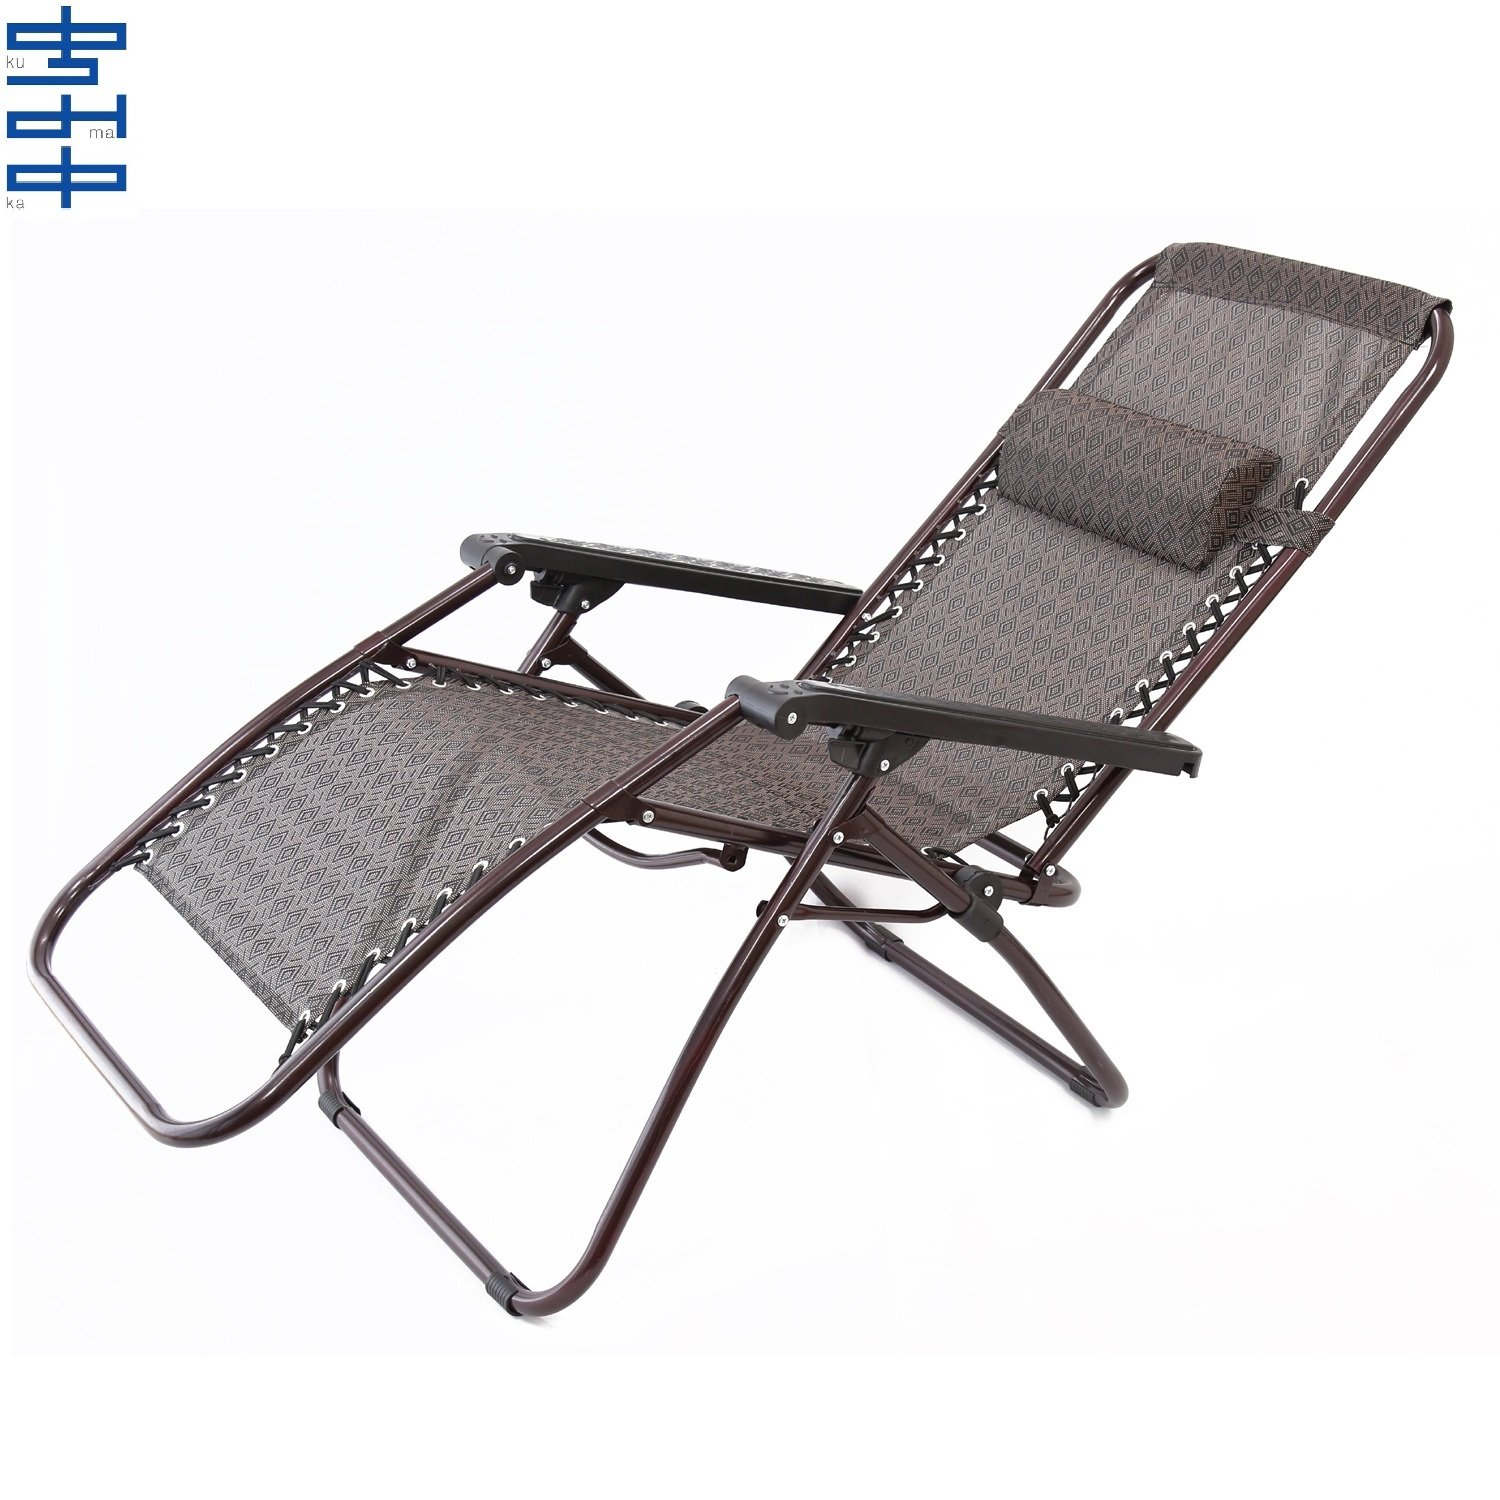 foldable chair buy foldable chair online at best prices in india